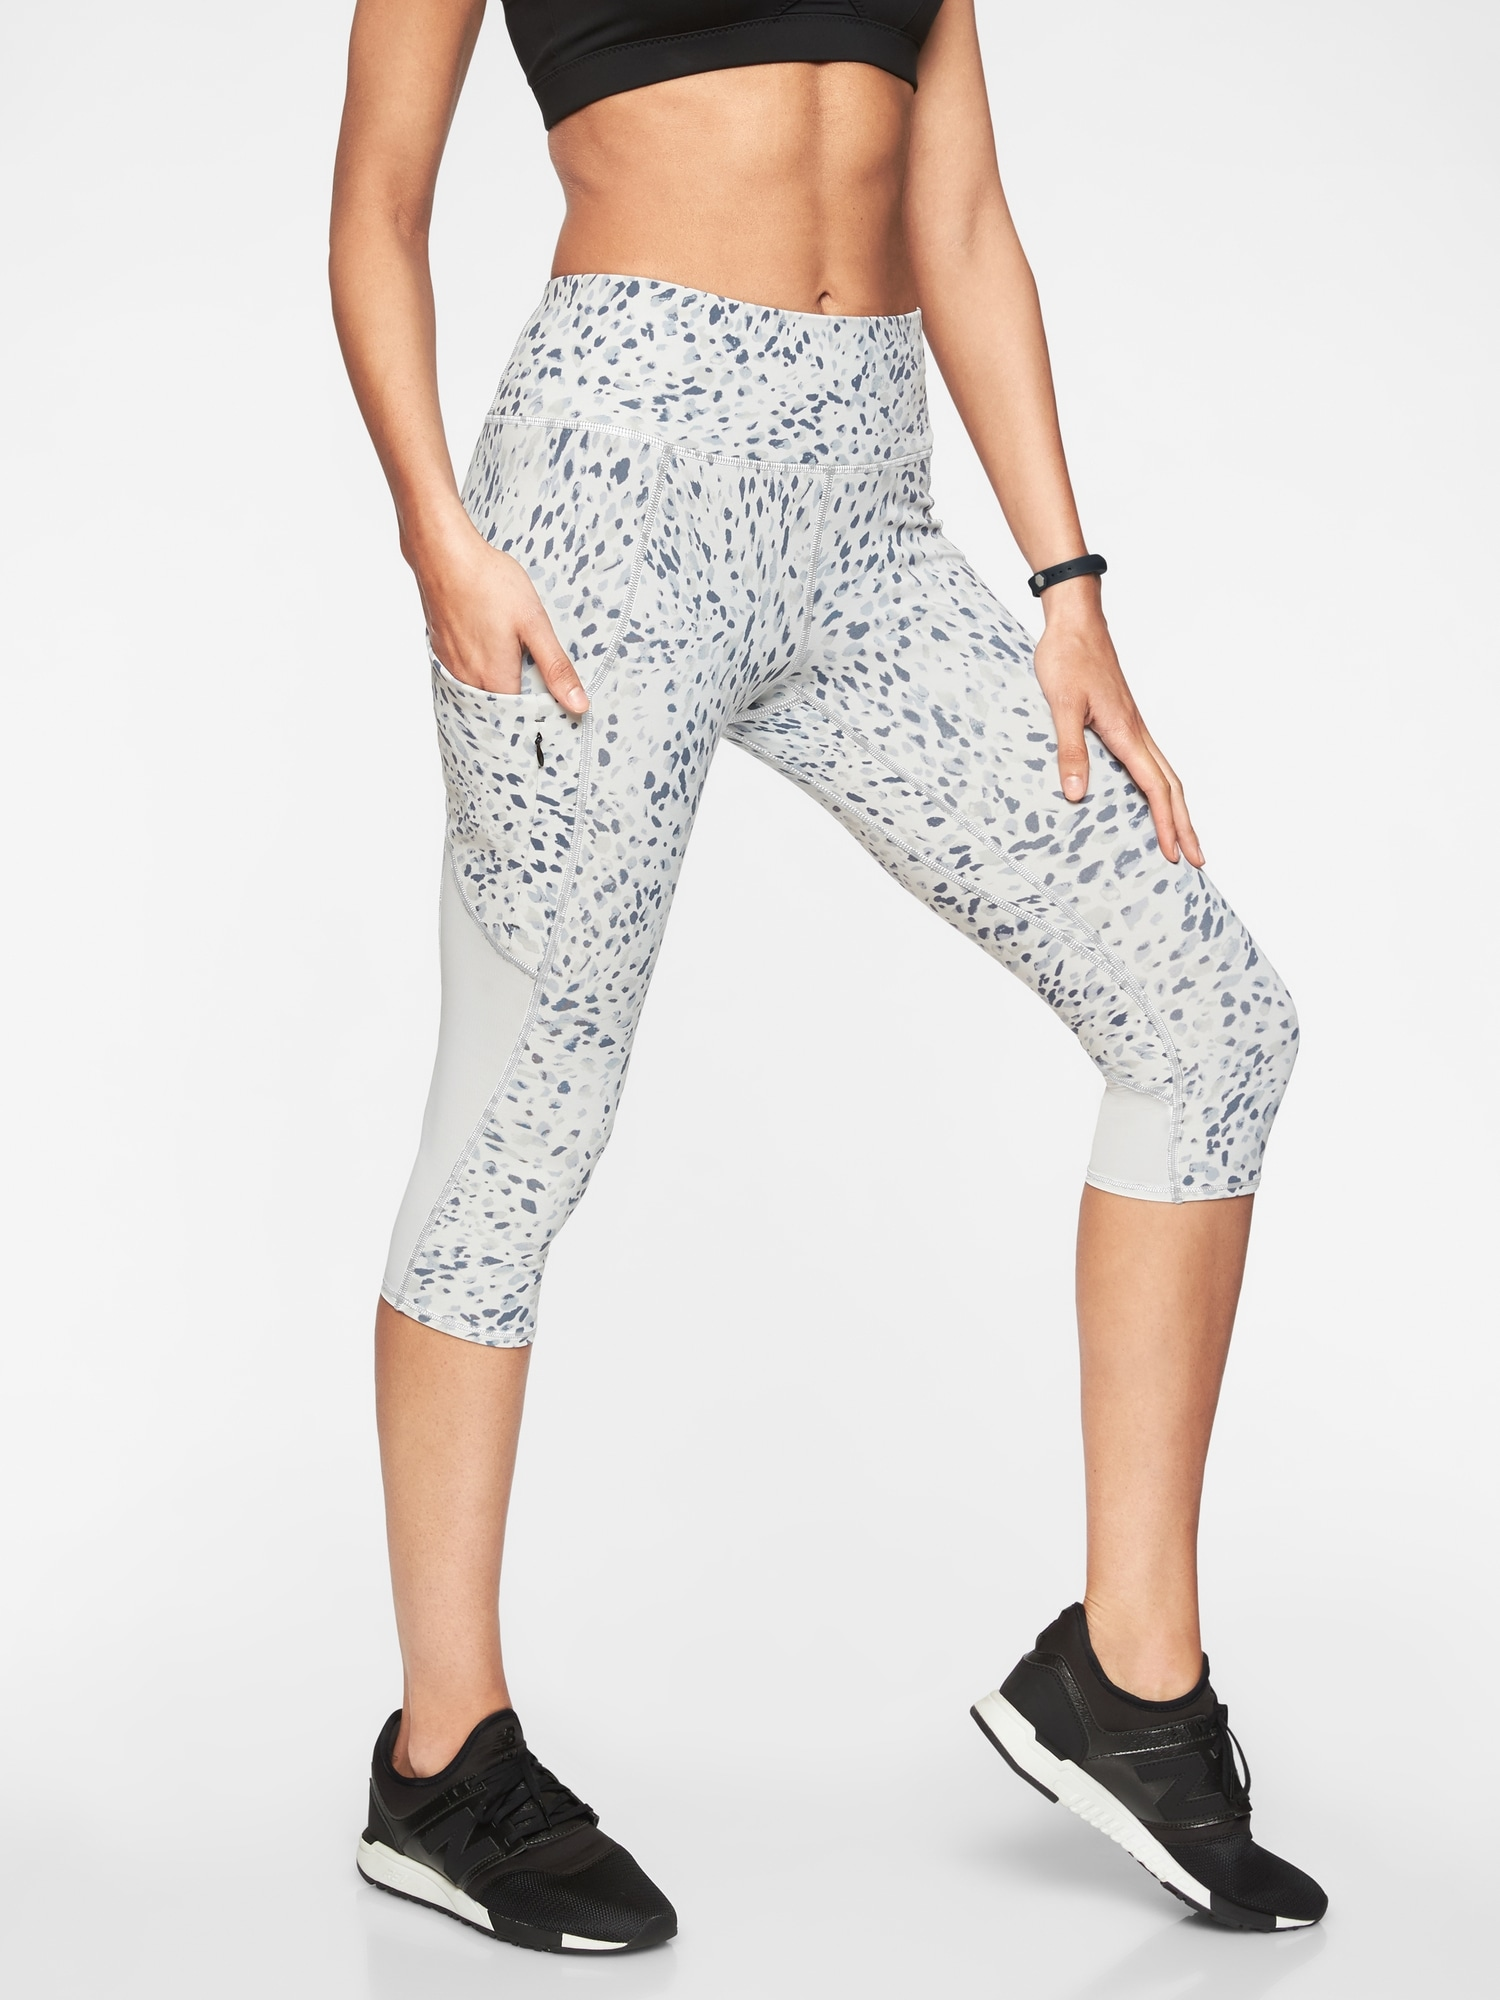 Spotty Up For Anything Crop by Athleta